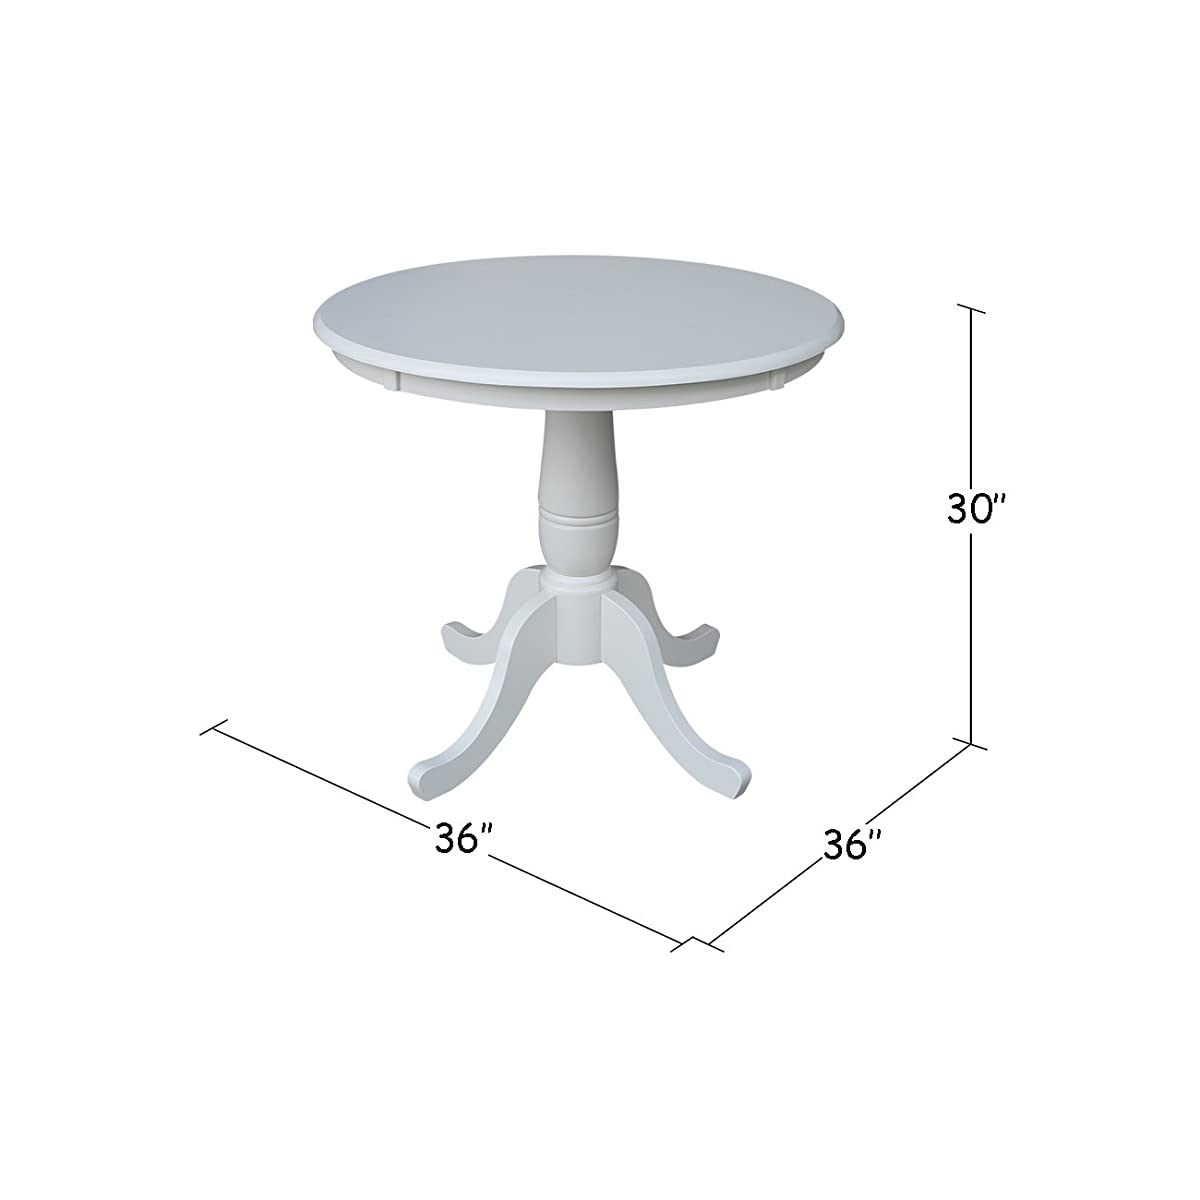 International Concepts 36-Inch Round by 30-Inch High Top Ped Table, Linen White